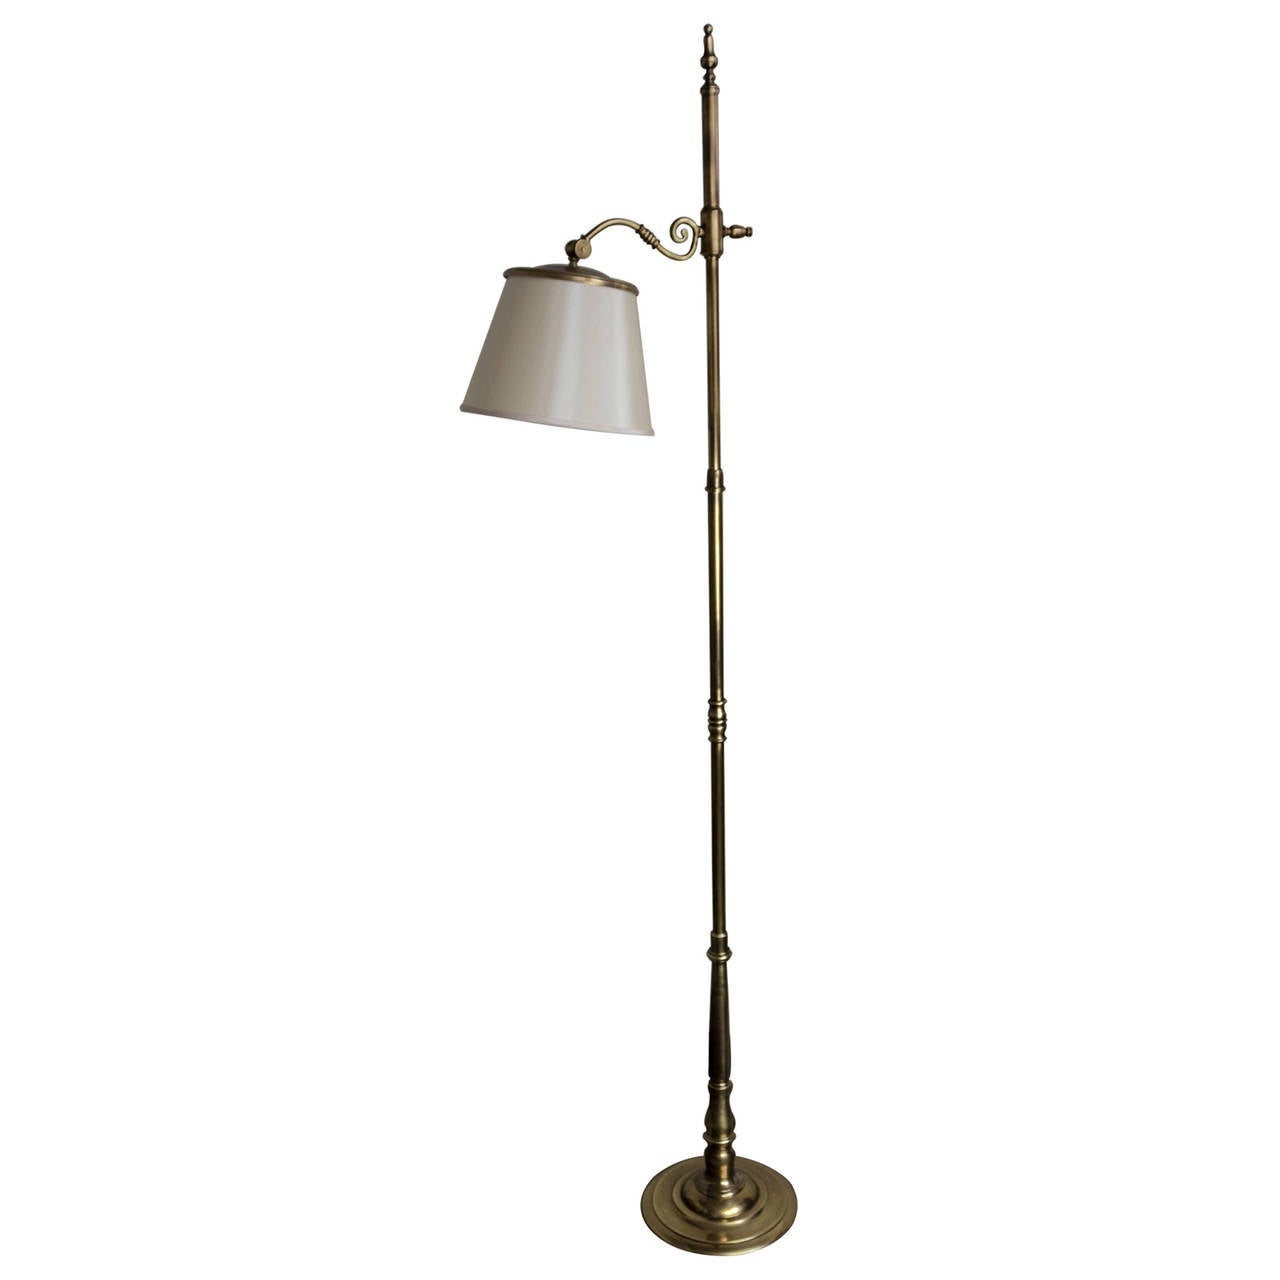 French 1940s Brass Adjustable Reading Floor Lamp For Sale